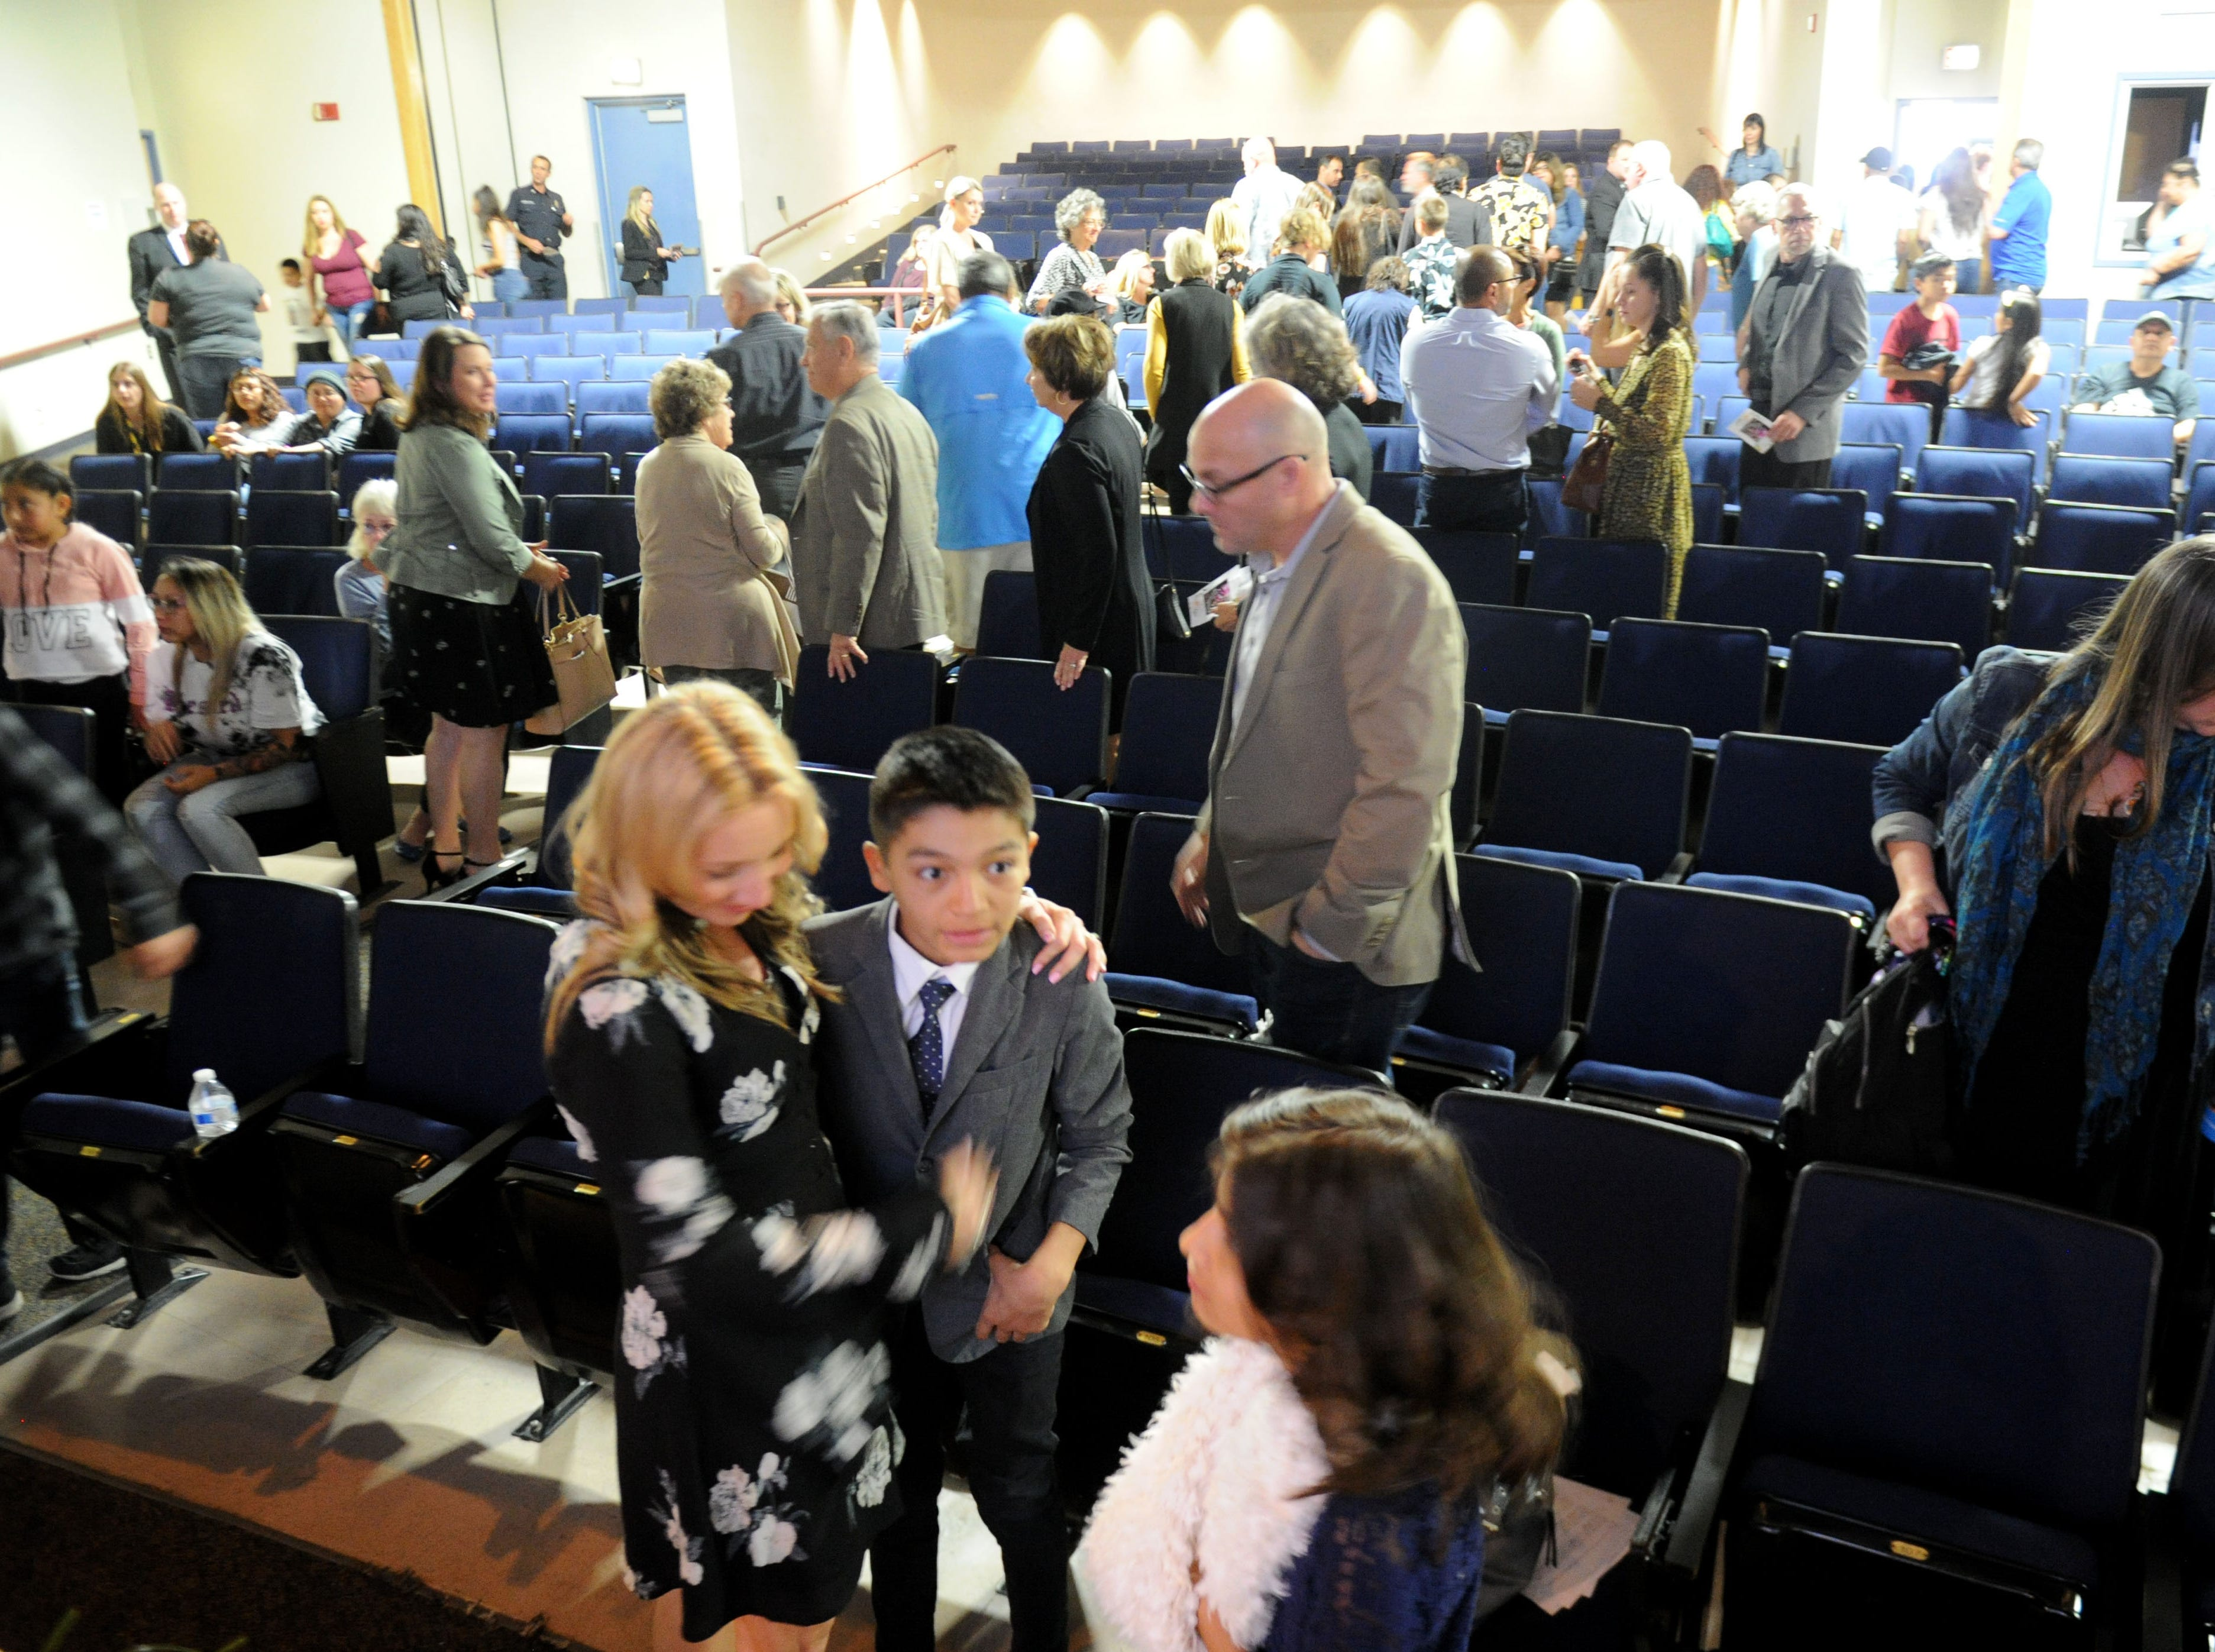 Karen Rogers (front left) hugs her son George Rogers, 11, at the end of the memorial service for Kimberly Lopez, the family's former foster daughter, on Saturday in Oxnard.